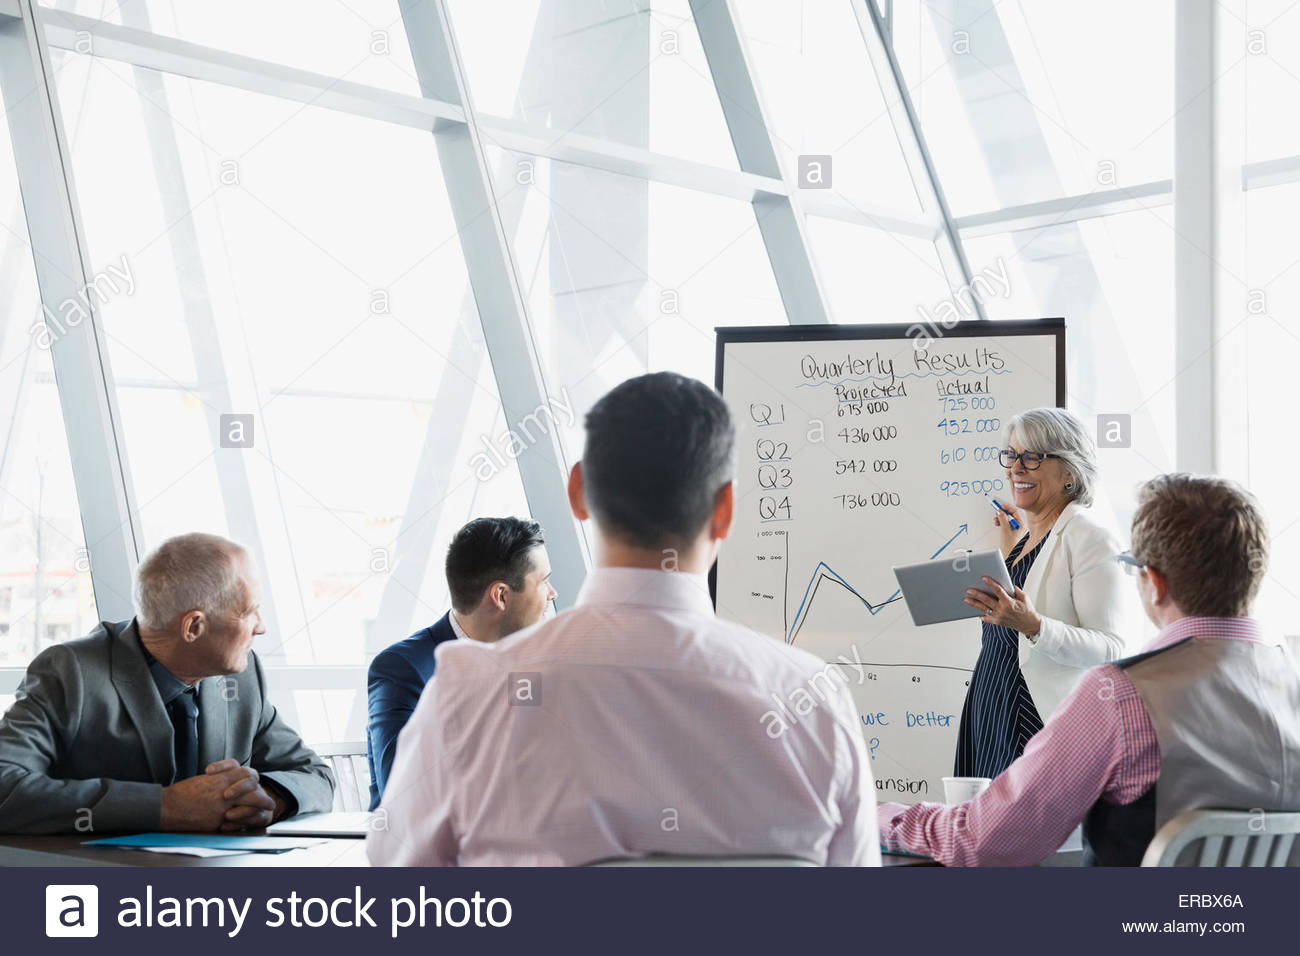 Businesswoman leading meeting at whiteboard in conference room Stock Photo